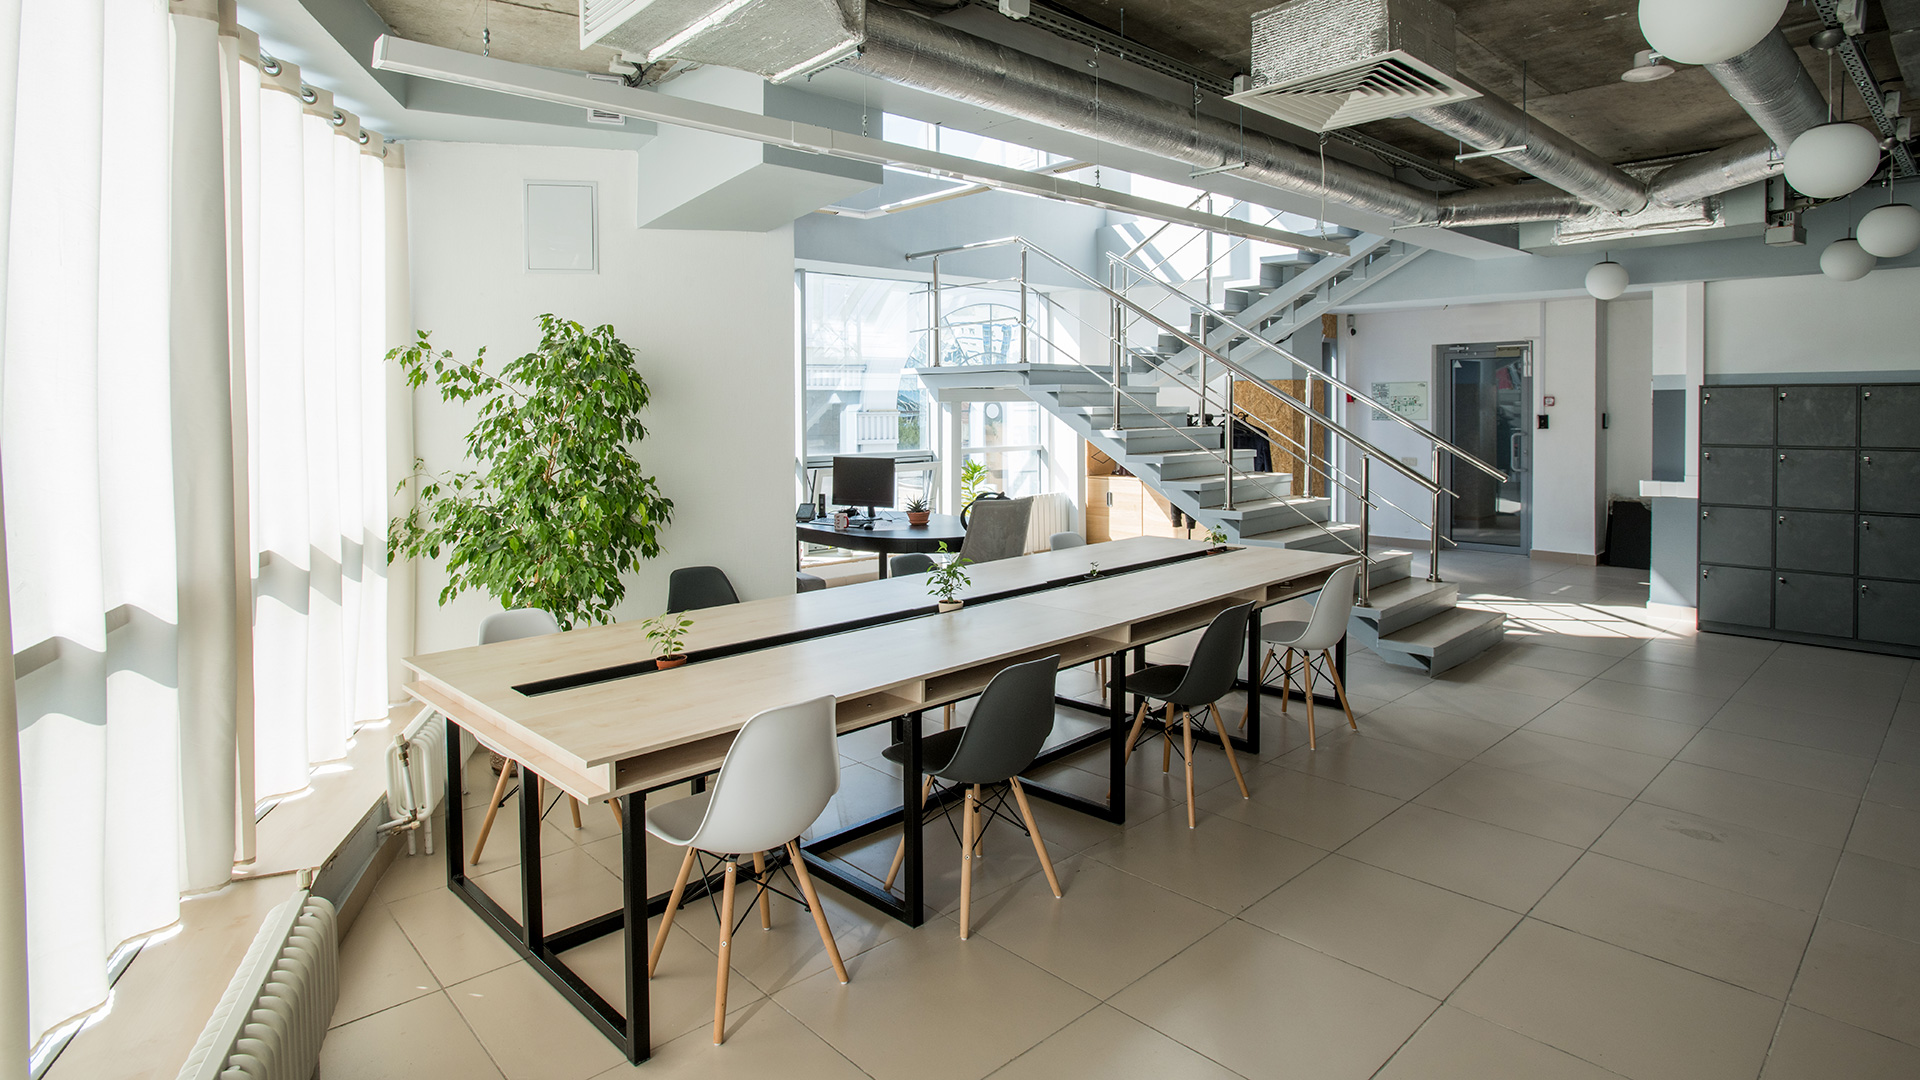 Indoor air quality is important for employee health